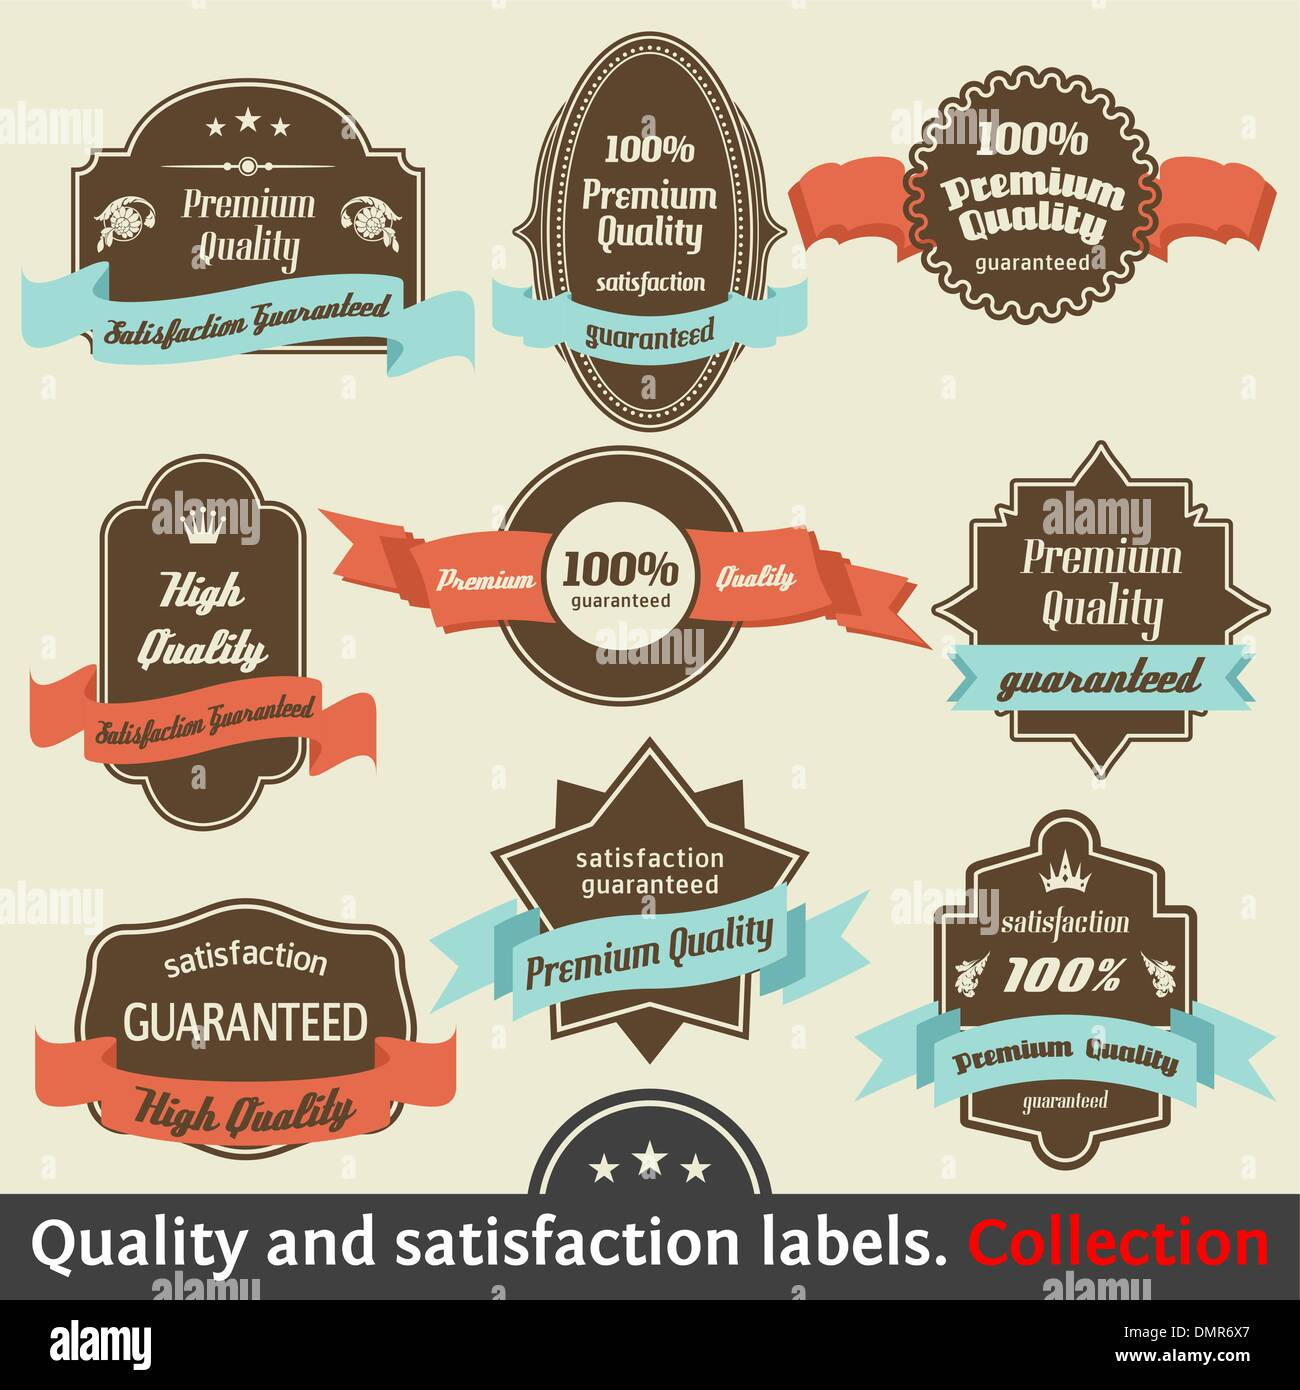 Vintage Premium Quality and Satisfaction Guarantee Label collect - Stock Image